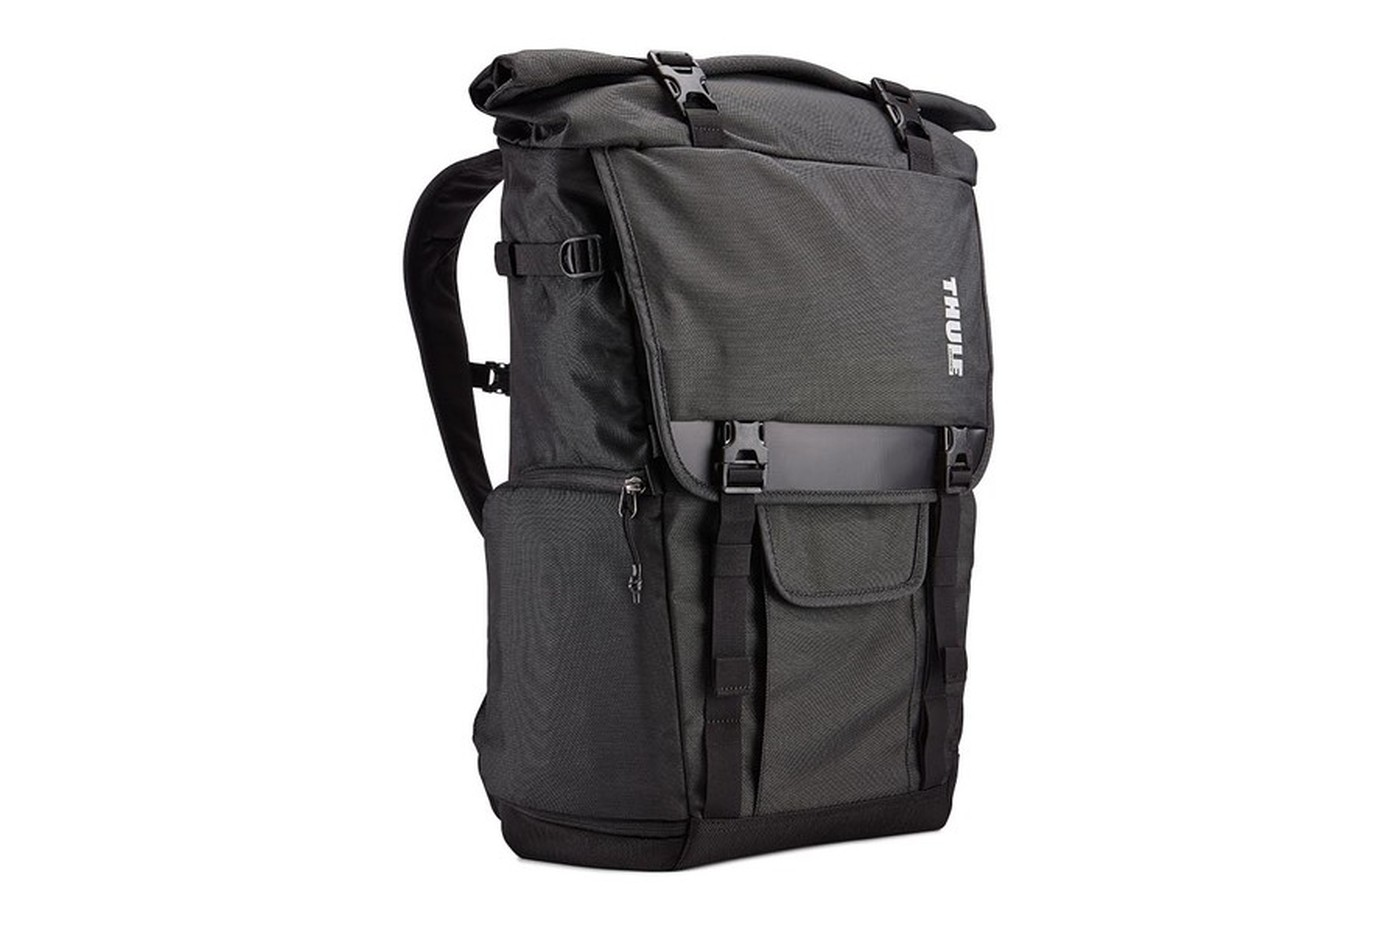 THULE Covert DSLR Rolltop Backpack - Black - Kamerataschen